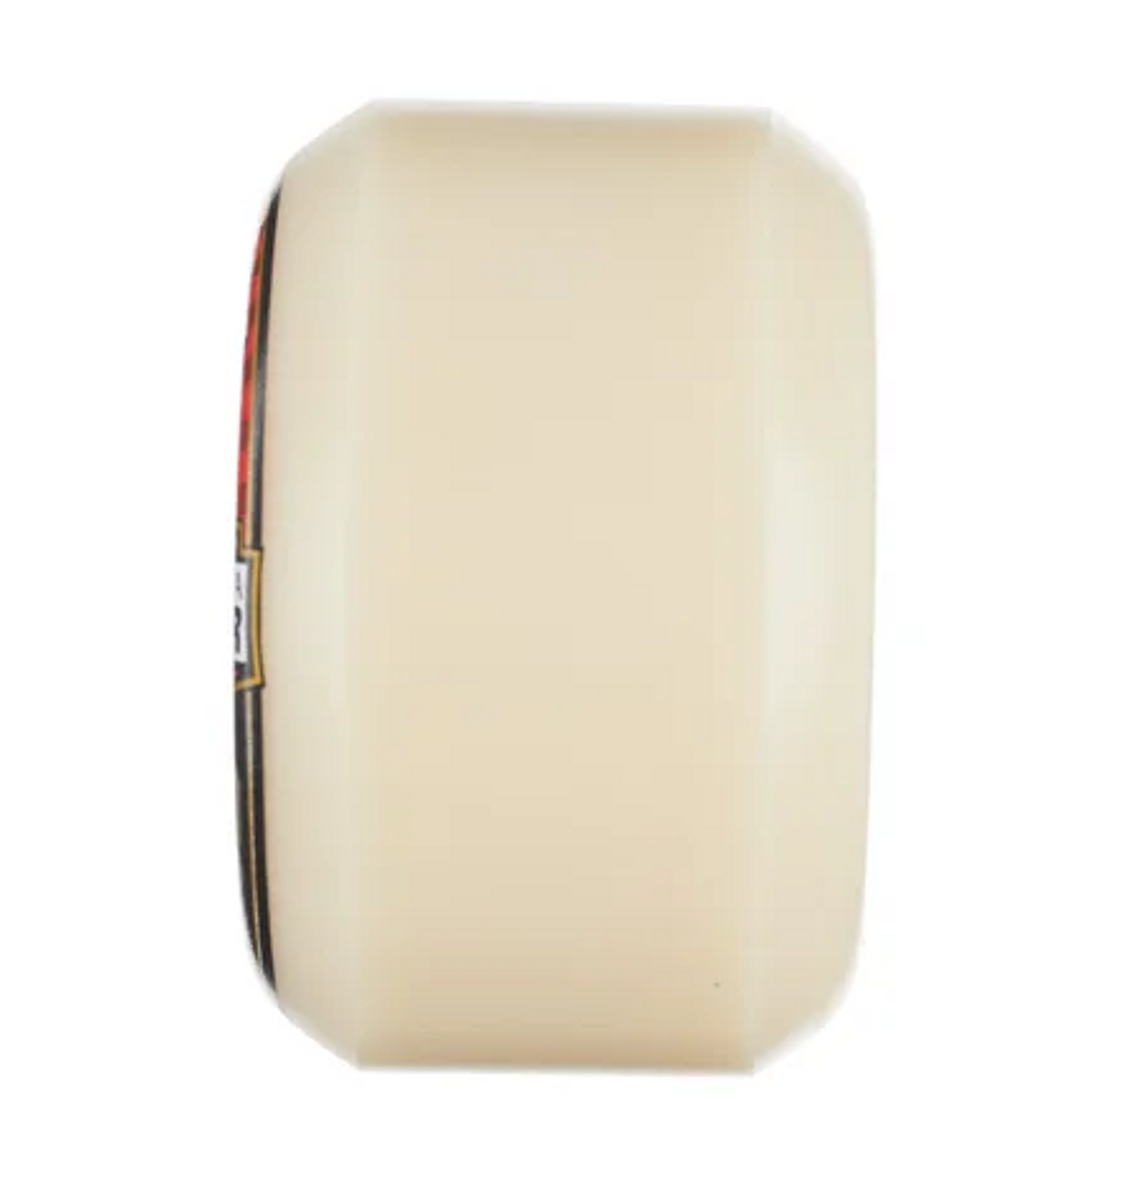 Spitfire Formula Four Conical Full 52mm 101a